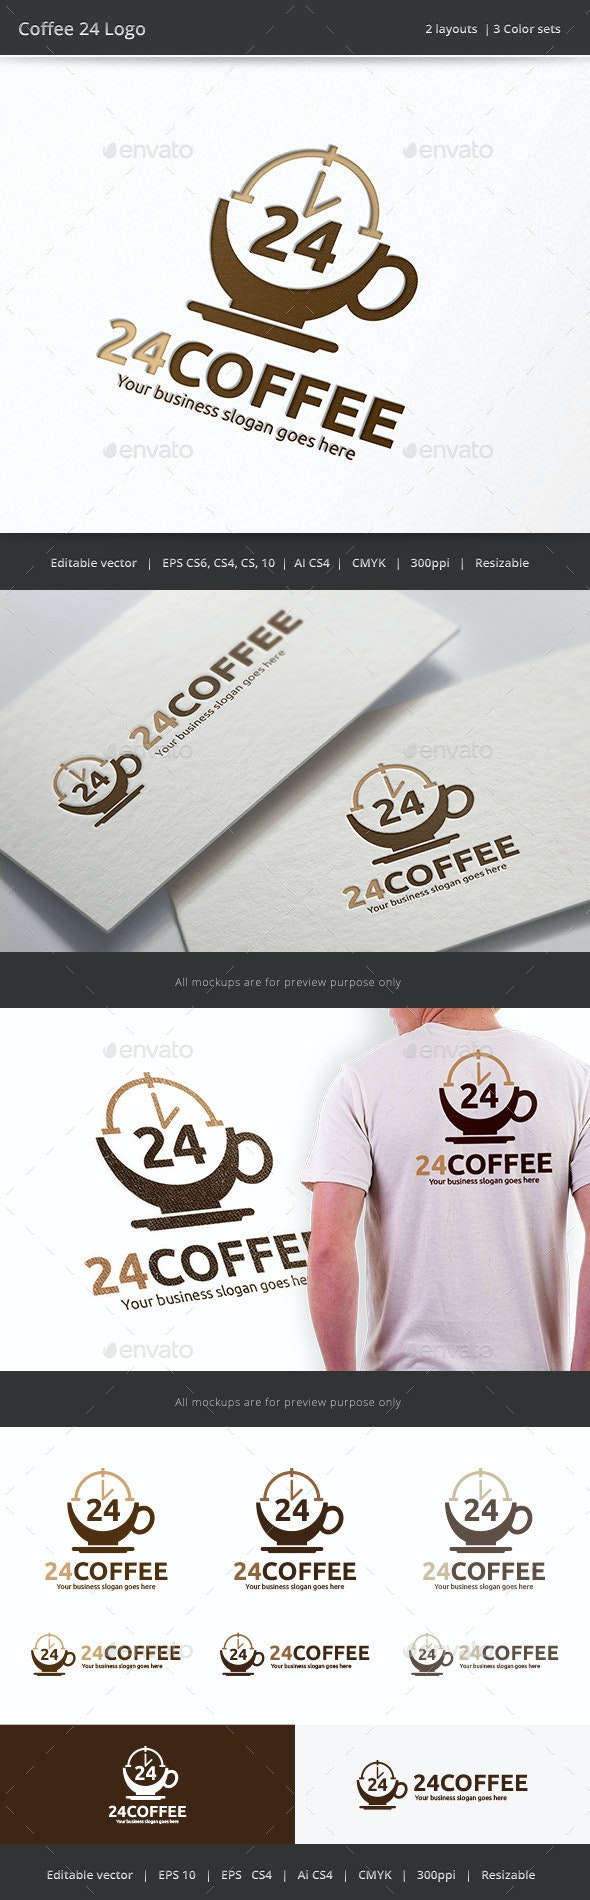 Coffee 24 Hour Logo - Objects Logo Templates